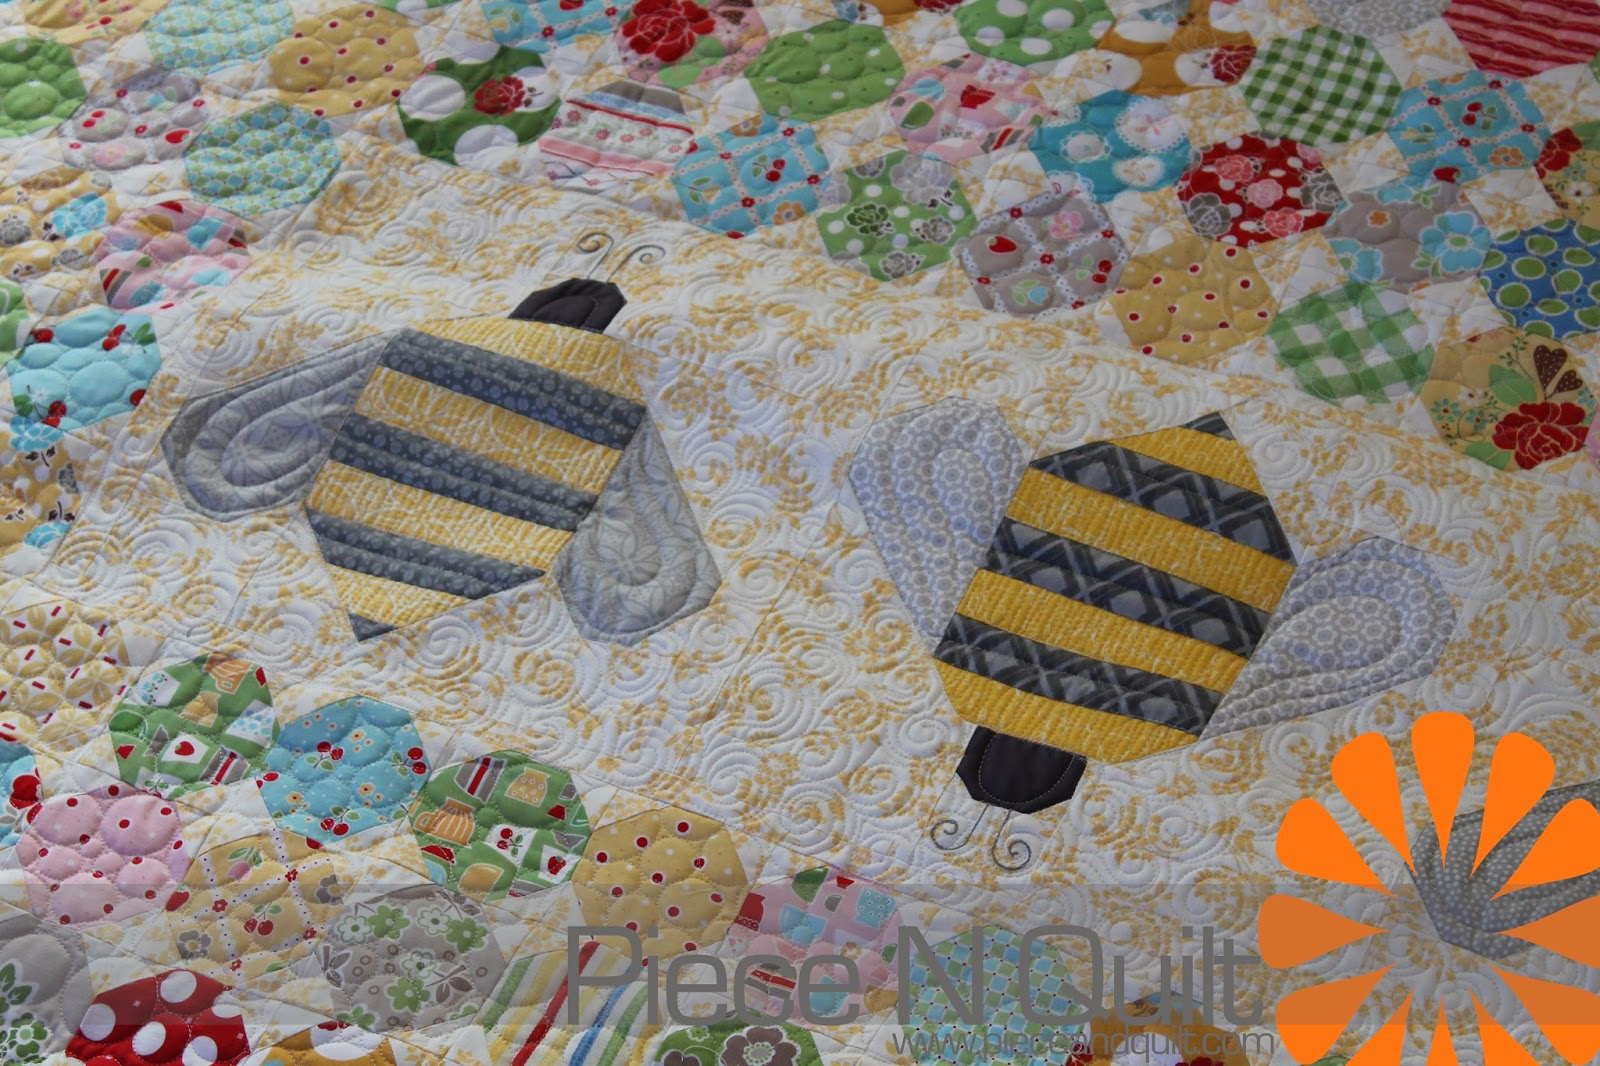 Piece N Quilt: Calico Hive Quilt : quilts n calicoes - Adamdwight.com